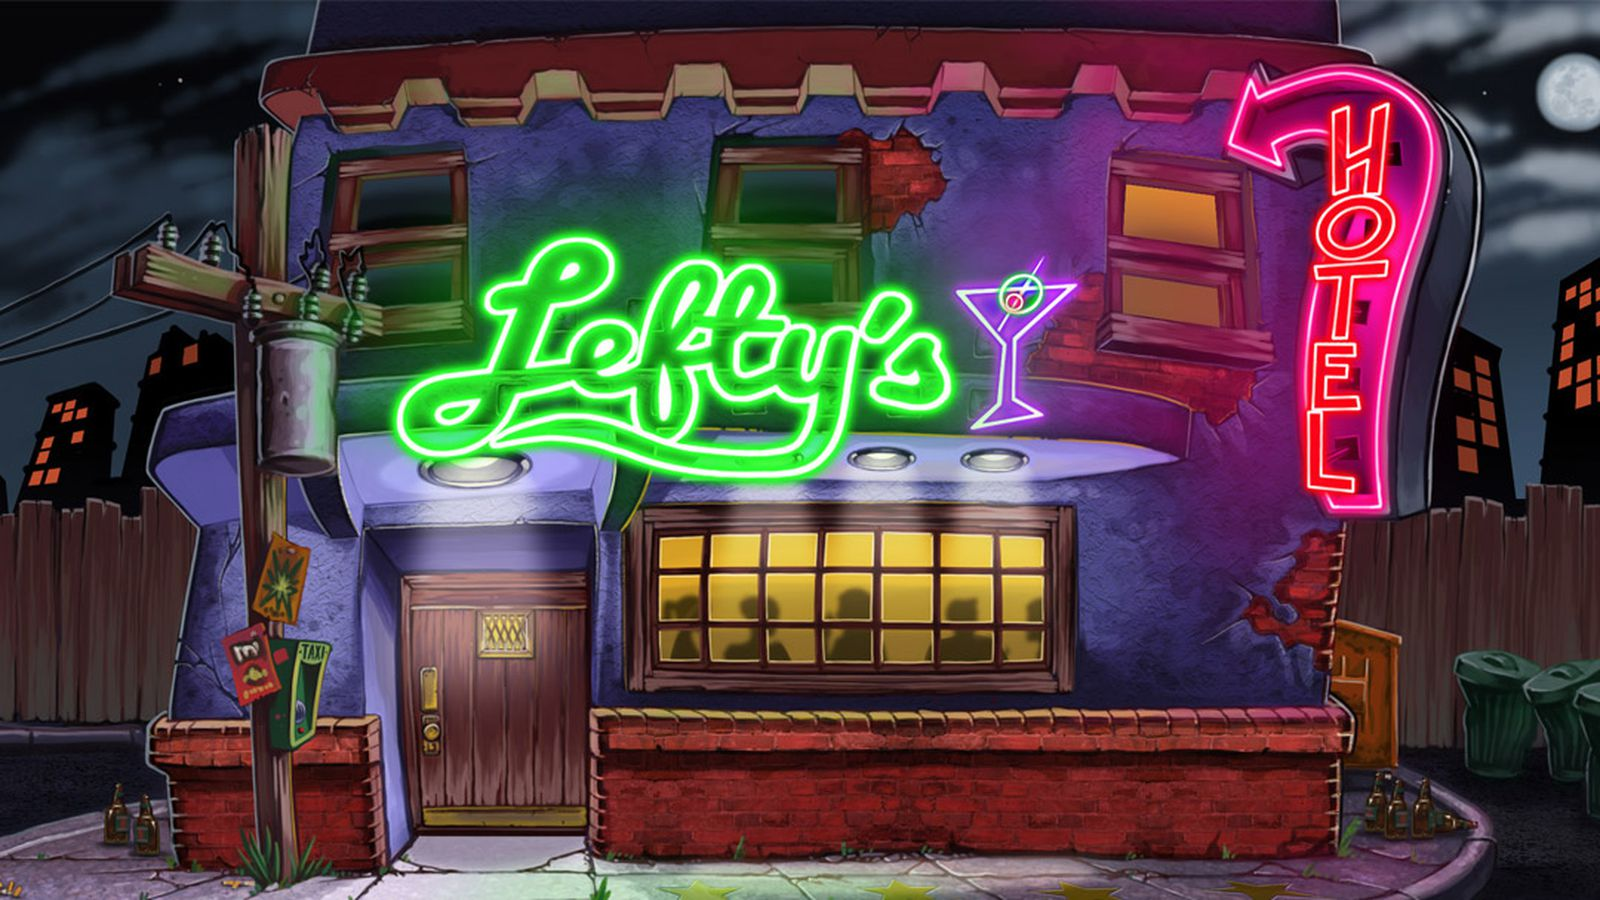 Leisure suit larry reloaded hits may 31 on pc mac linux for Floor 6 reloaded menu